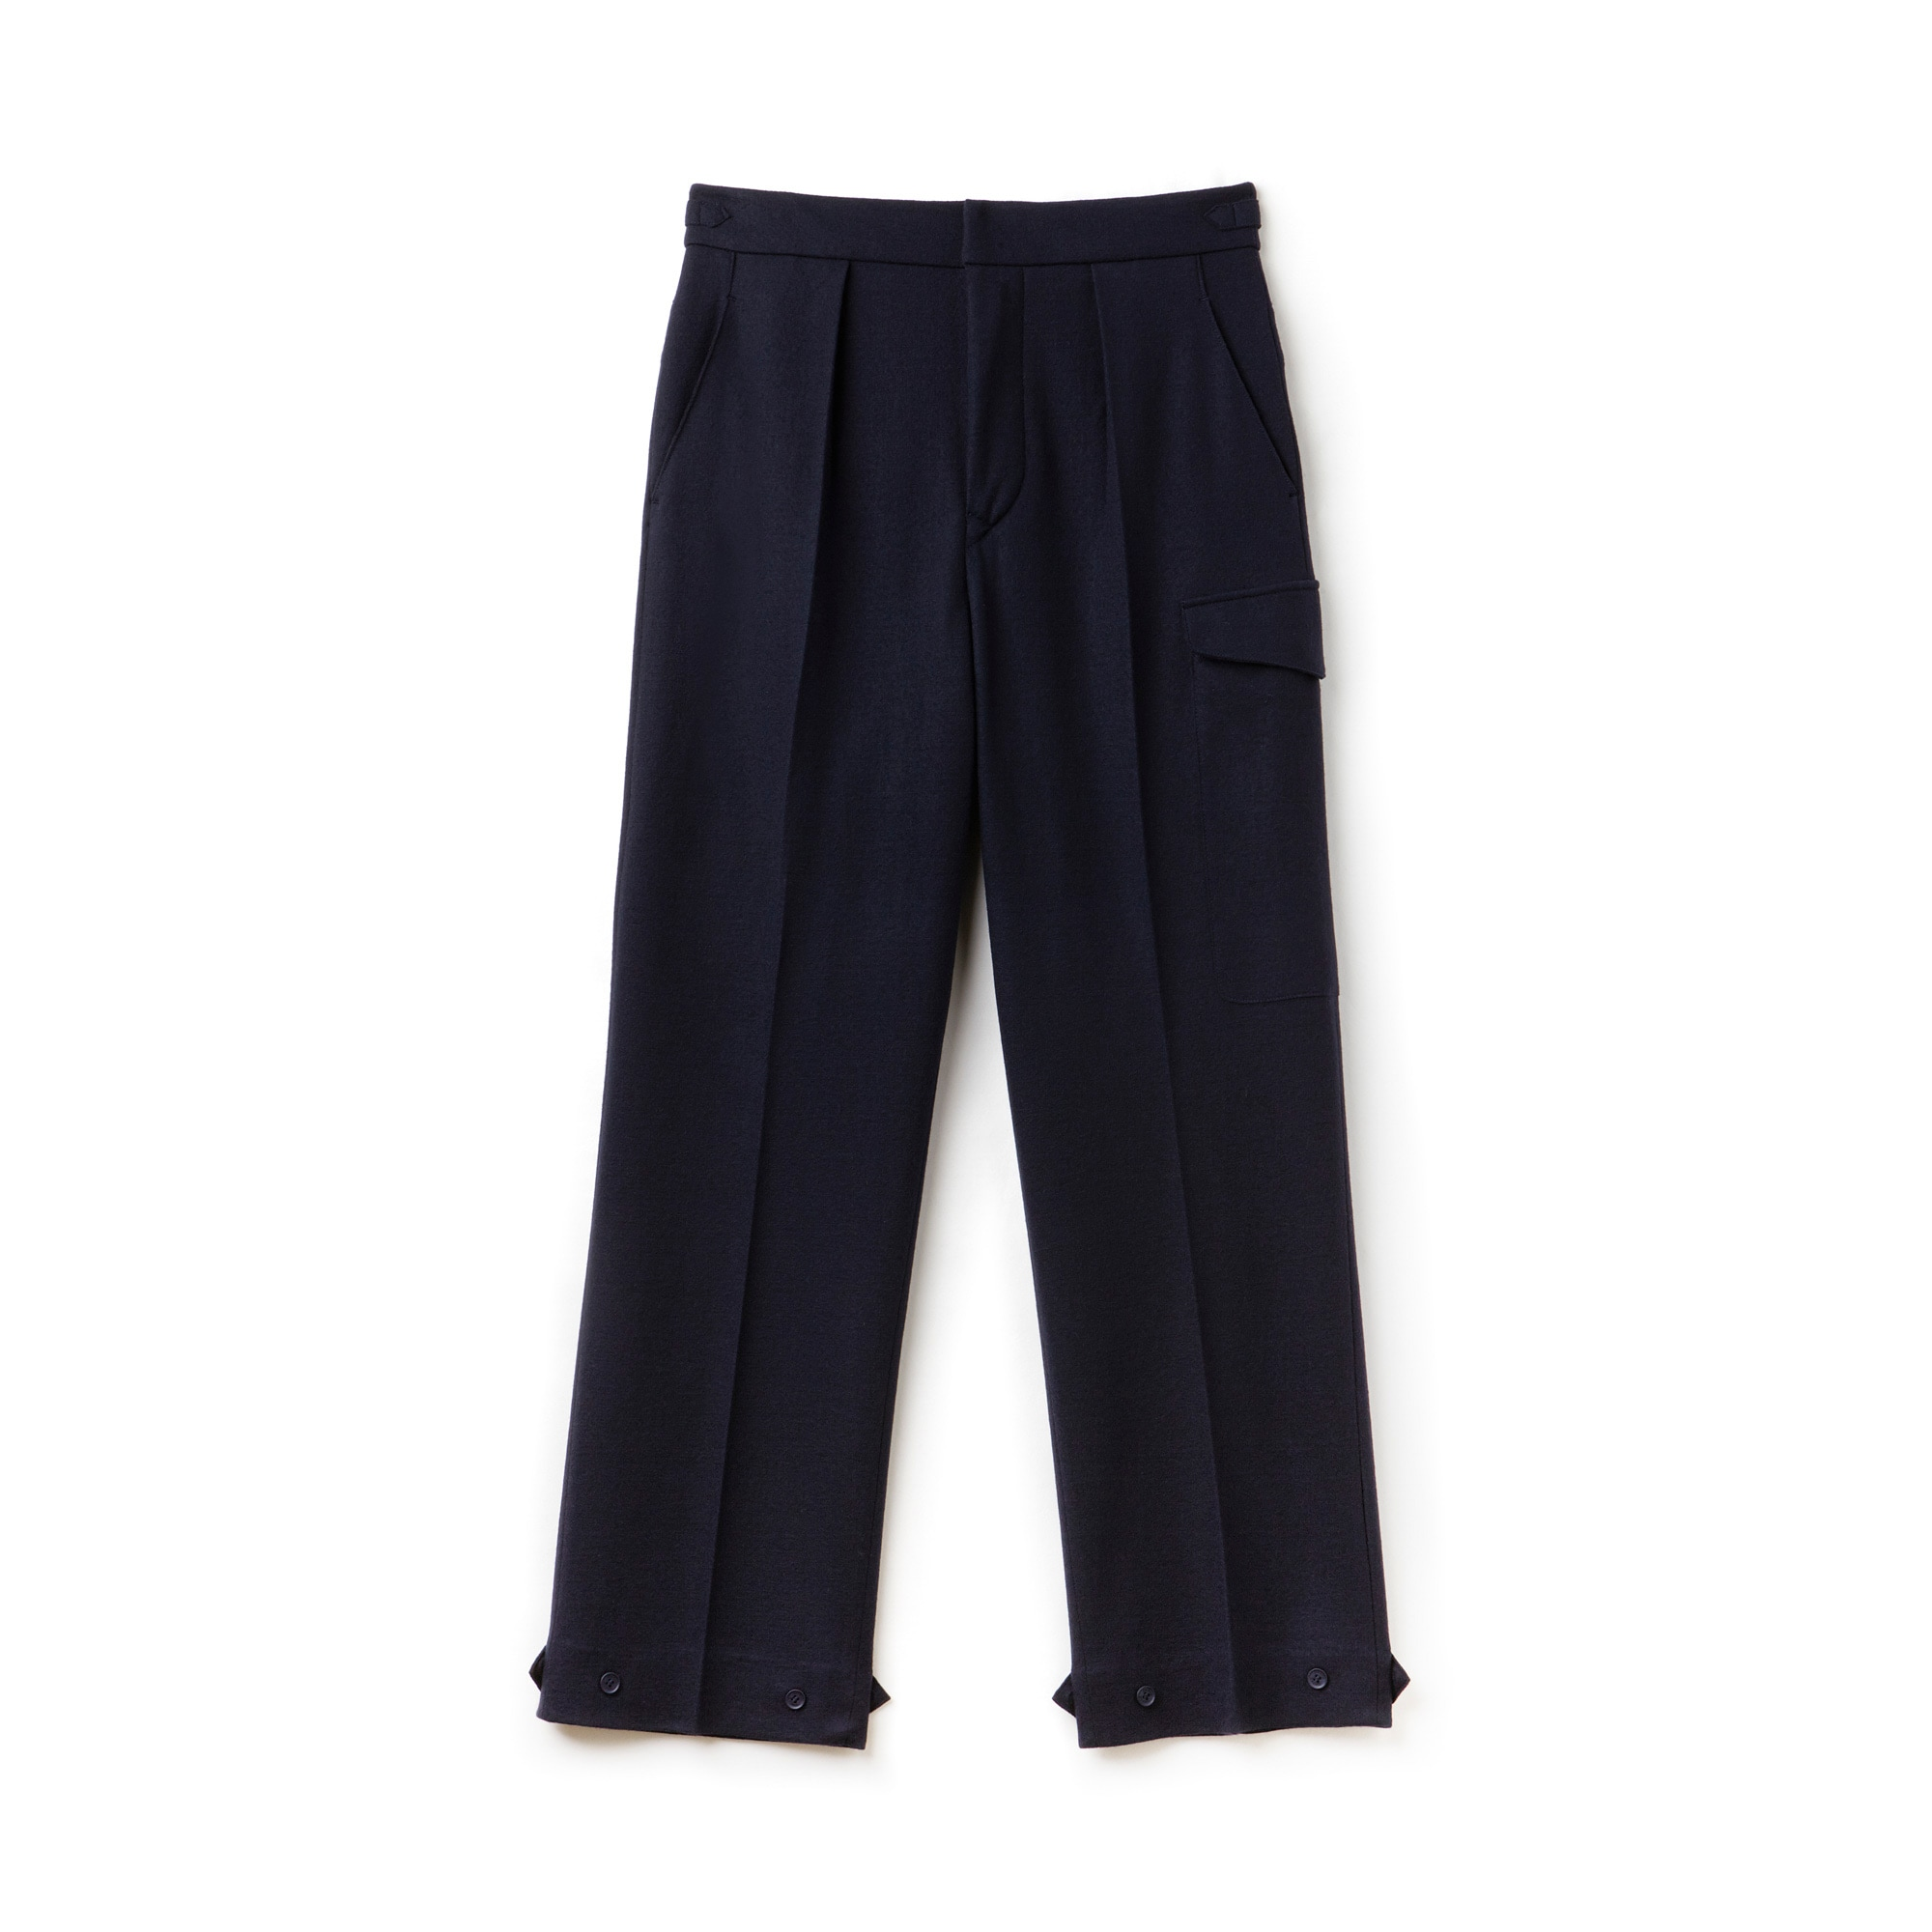 Men's Fashion Show Wide Fit Wool Interlock Knit Pants